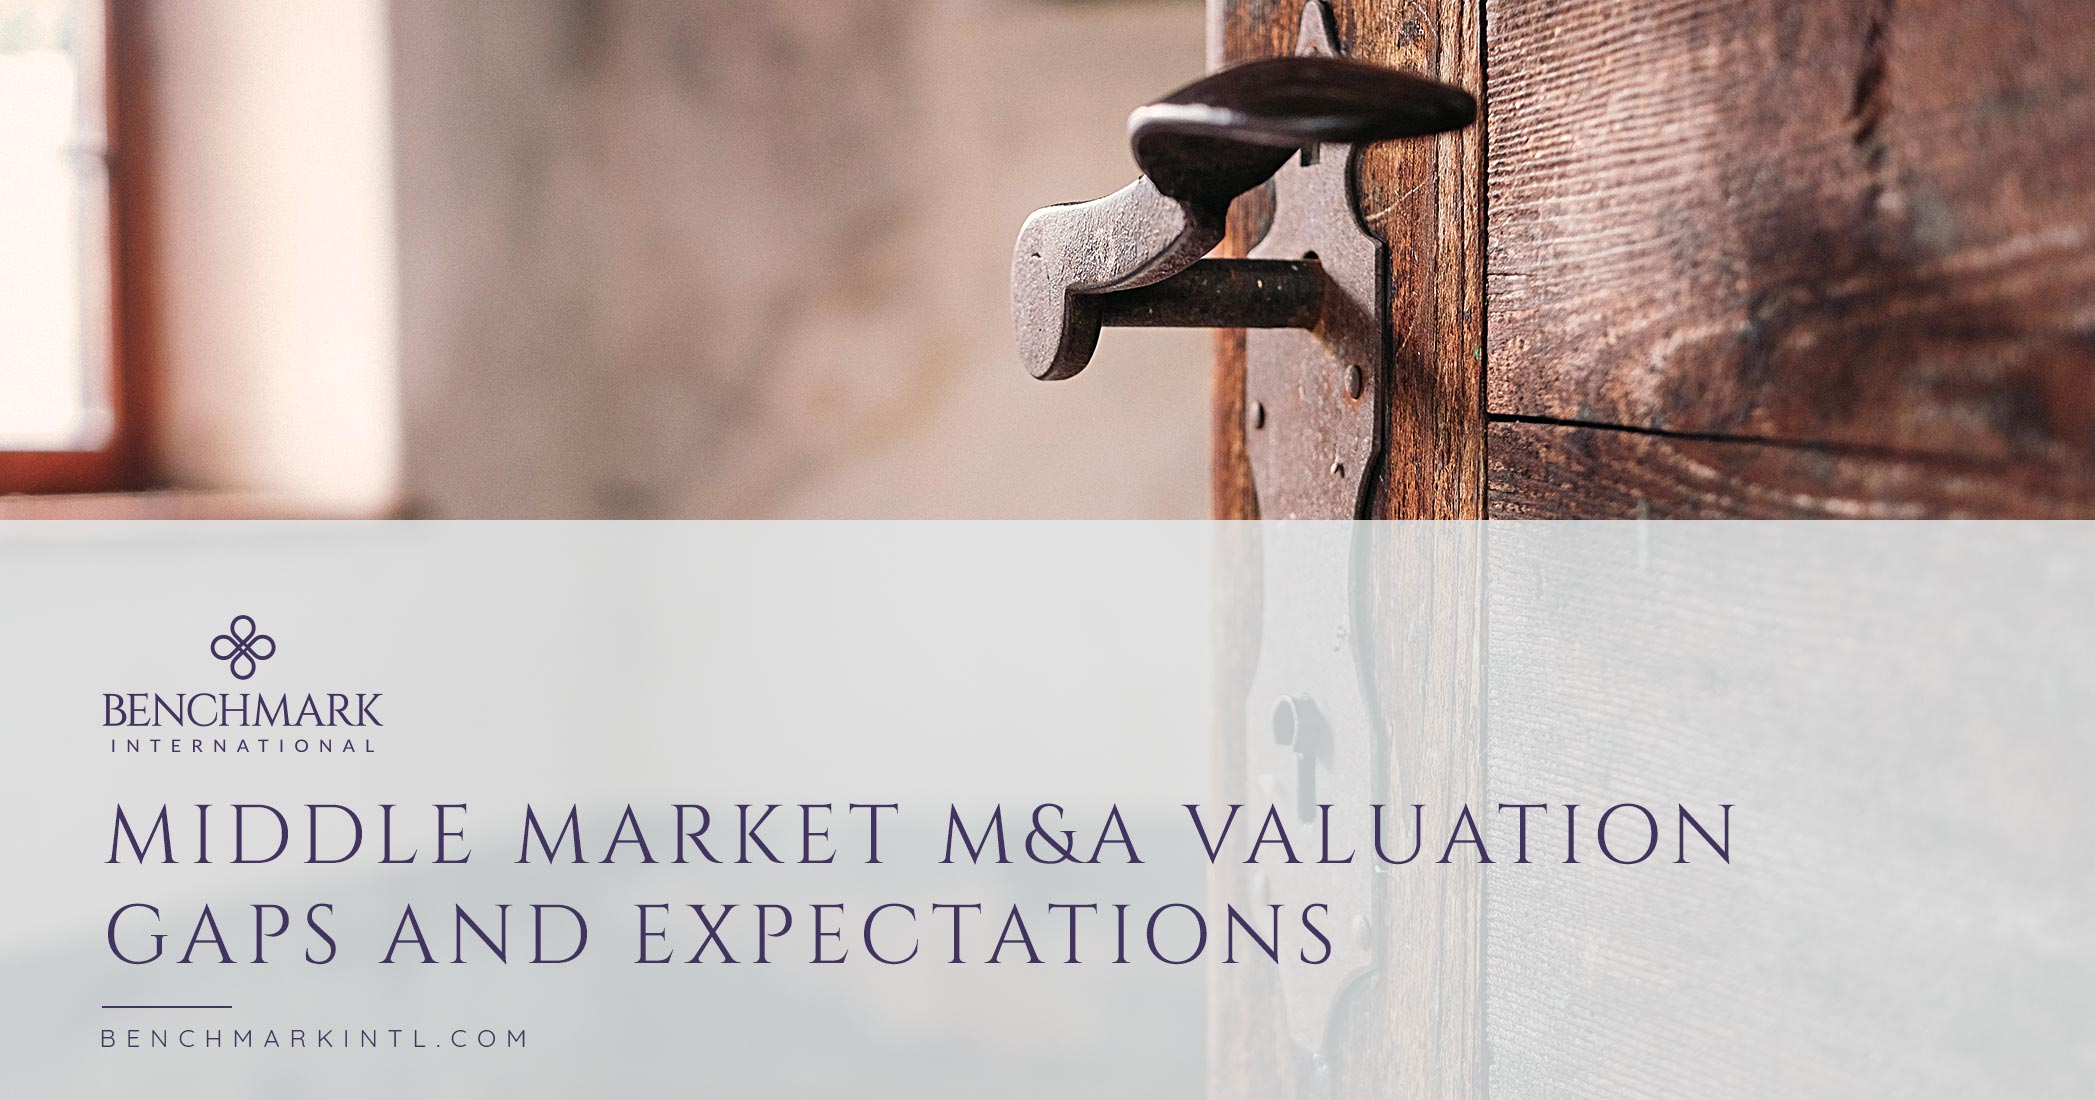 Middle Market M&A Valuation Gaps And Expectations